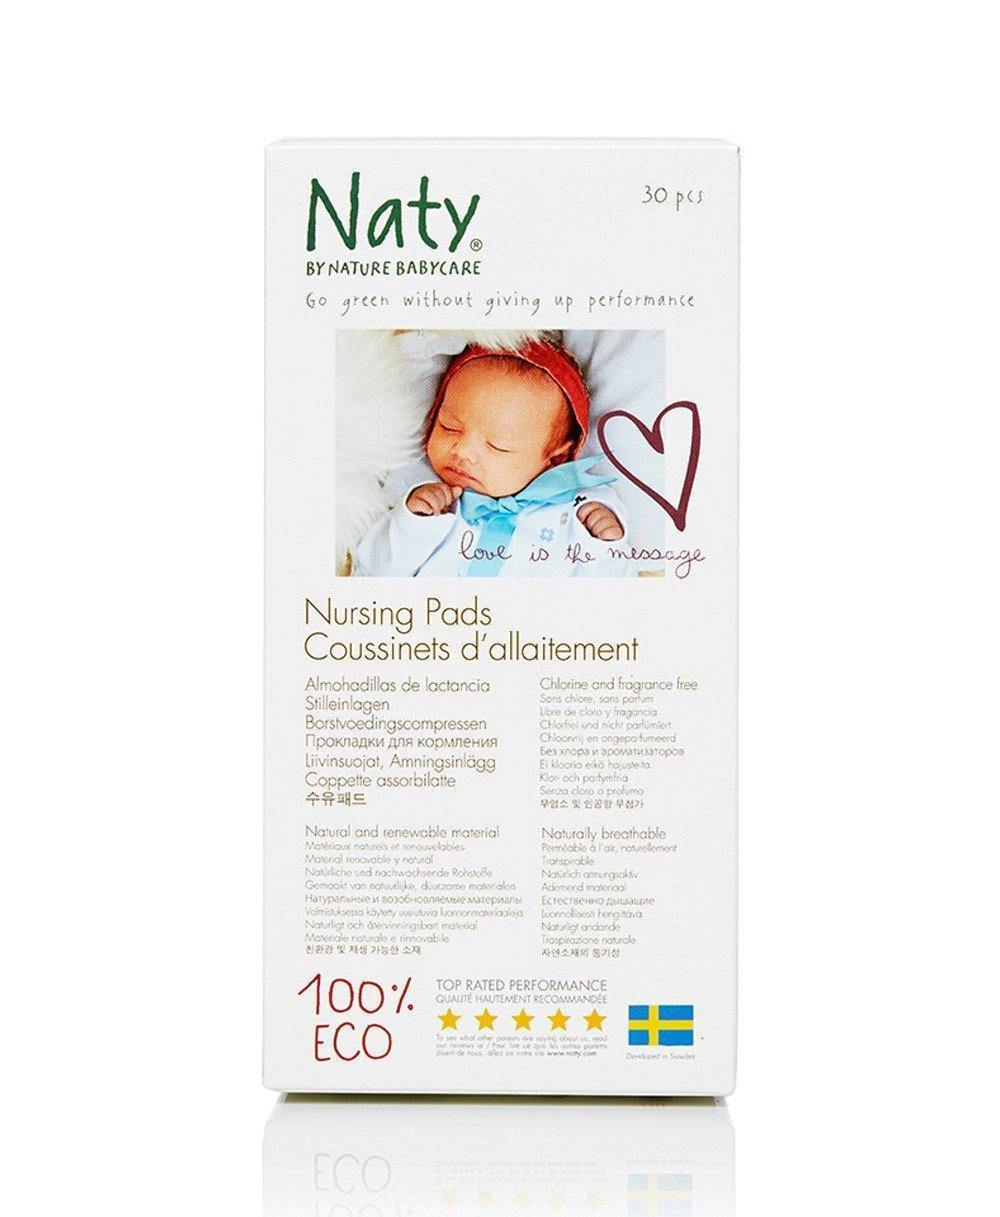 Naty Biodegradable Nursing Pads Diapers and Wipes betterorganicformula.com